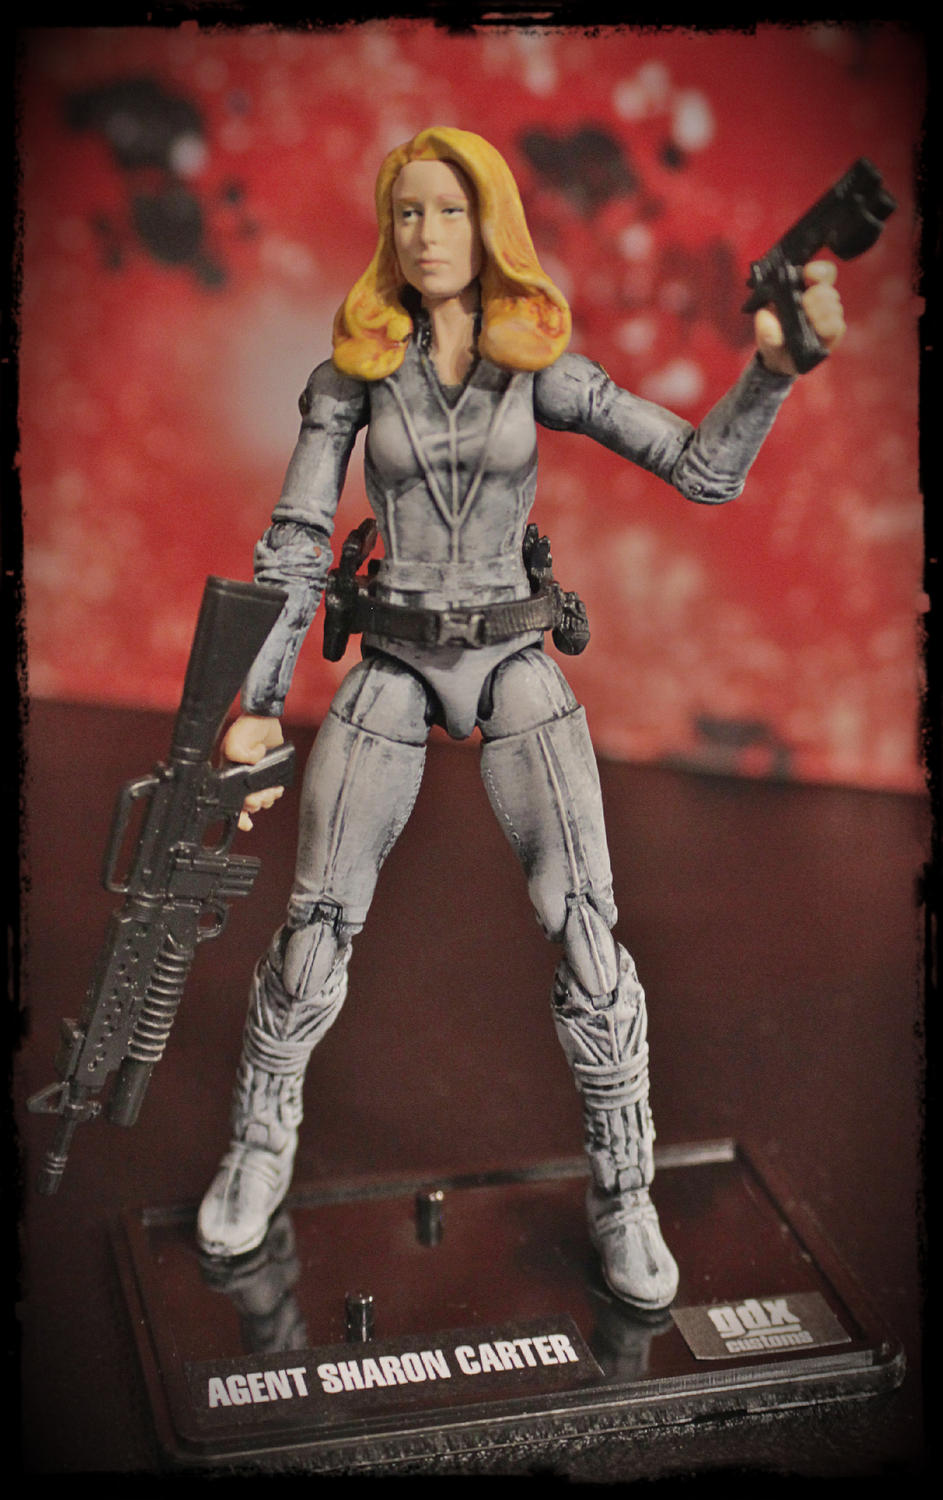 Agent Carter Toys : Mandroid with agent sharon carter toy discussion at